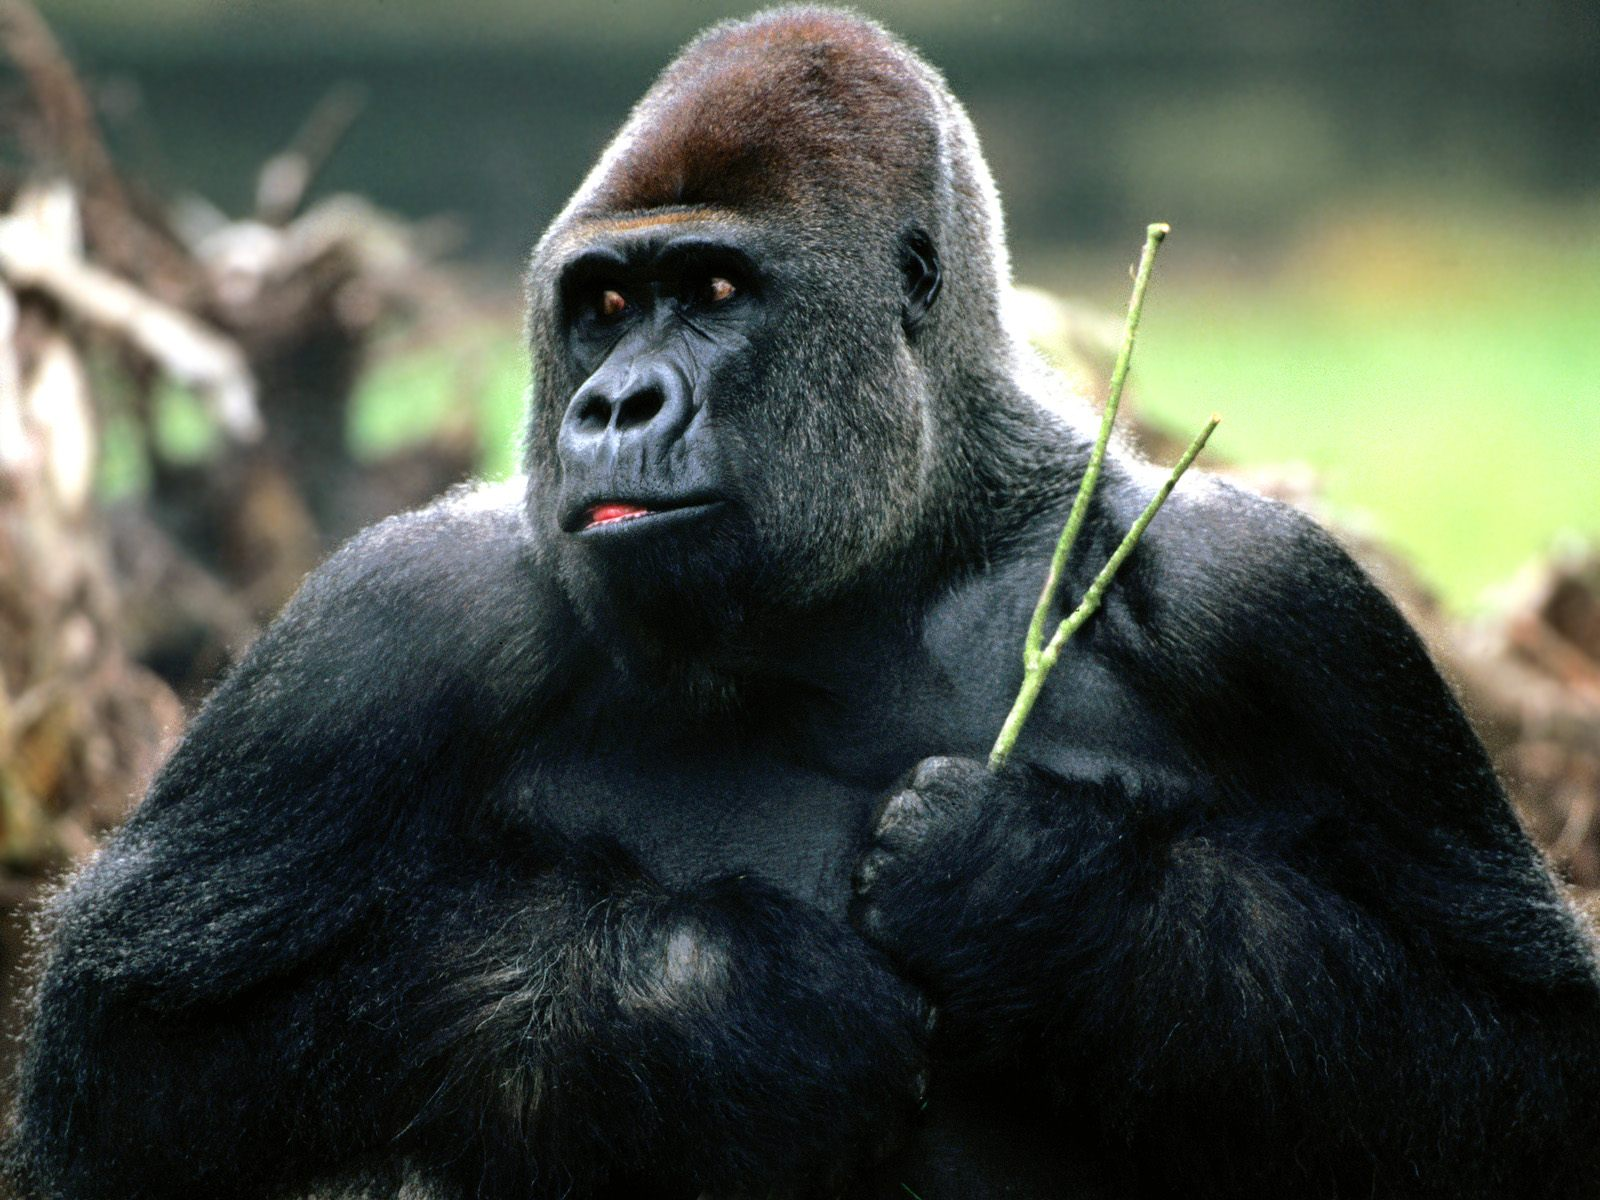 Hd Wallpapers Gorilla Hd Wallpapers